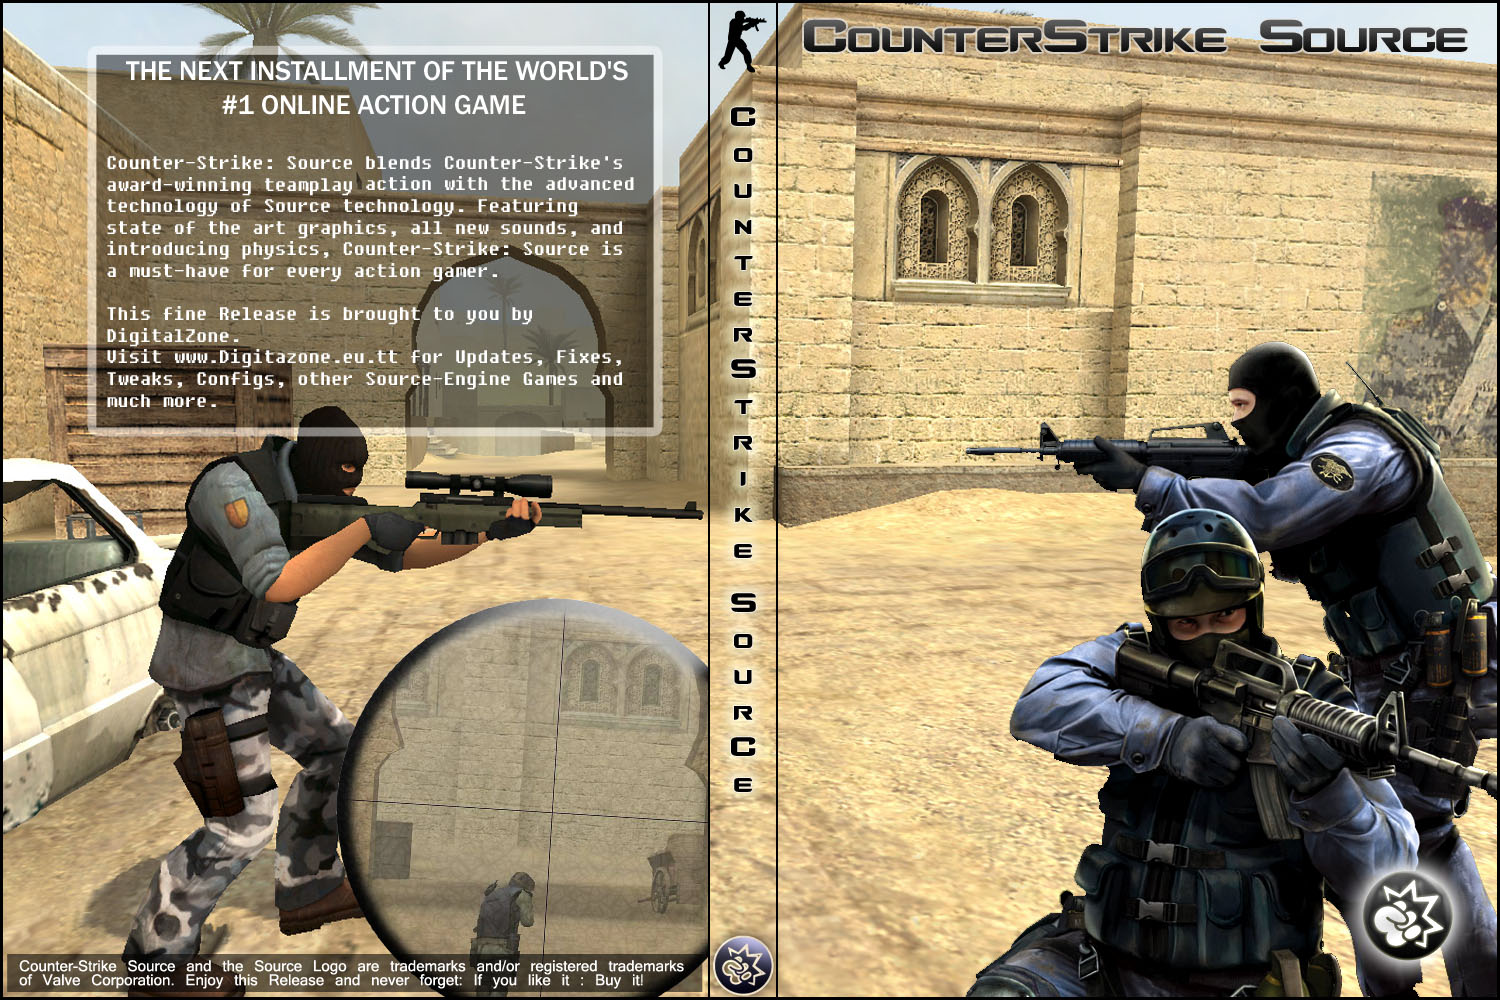 how to get counter strike source for free on steam